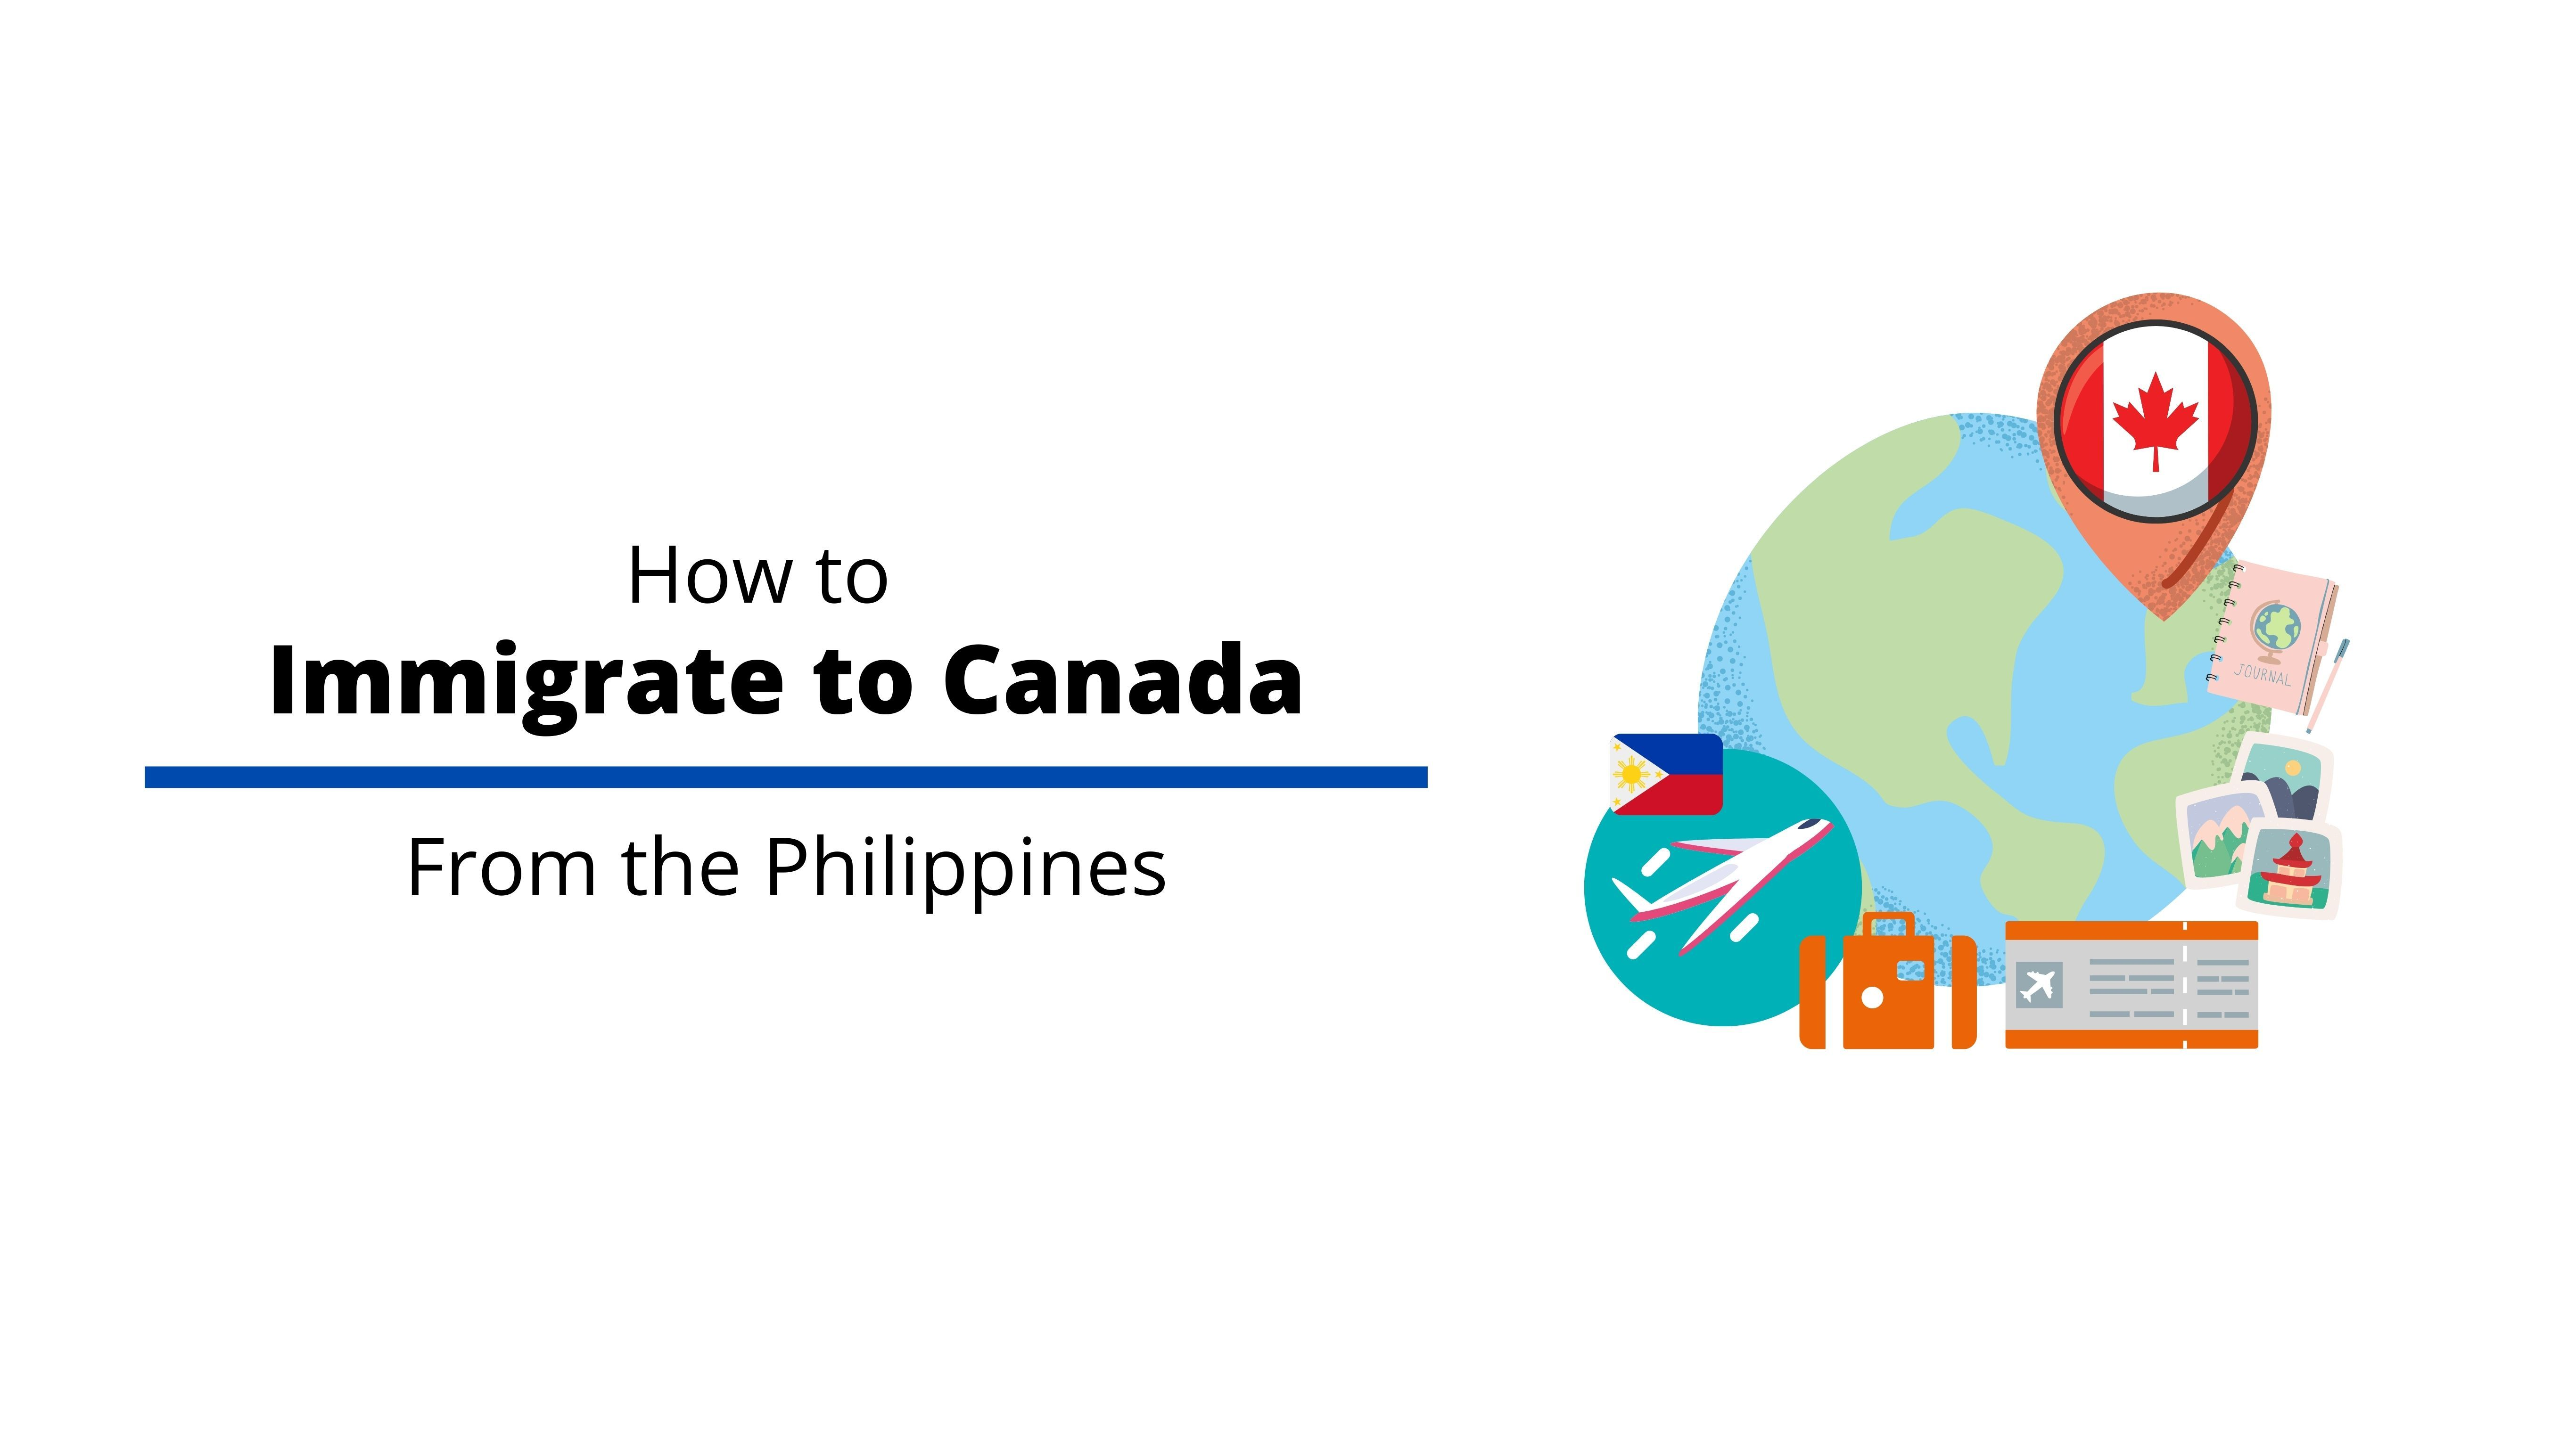 How to Immigrate to Canada from the Philippines